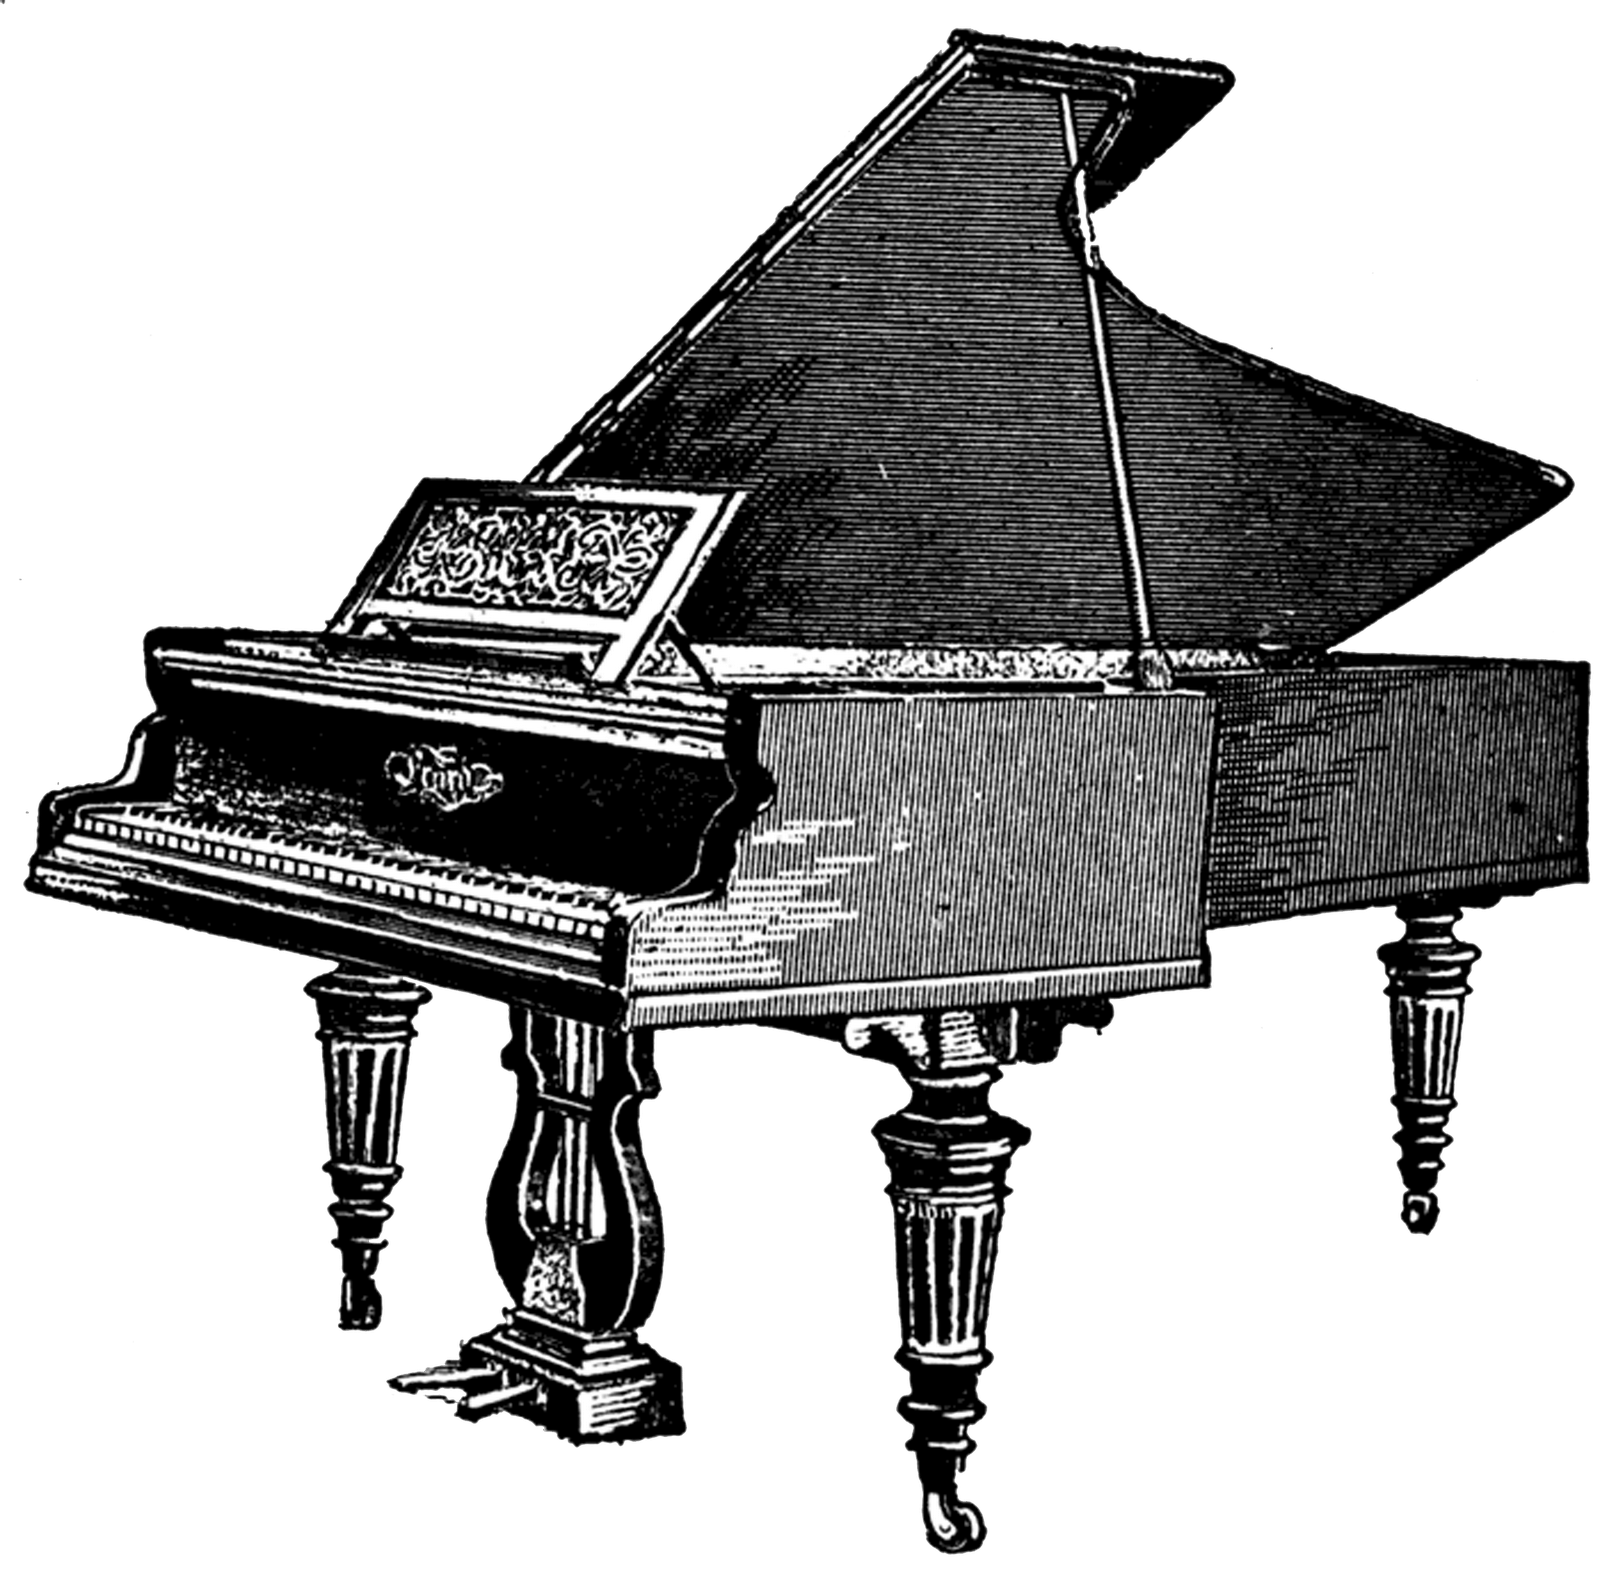 Transparent png images stickpng. Piano clipart old piano picture download